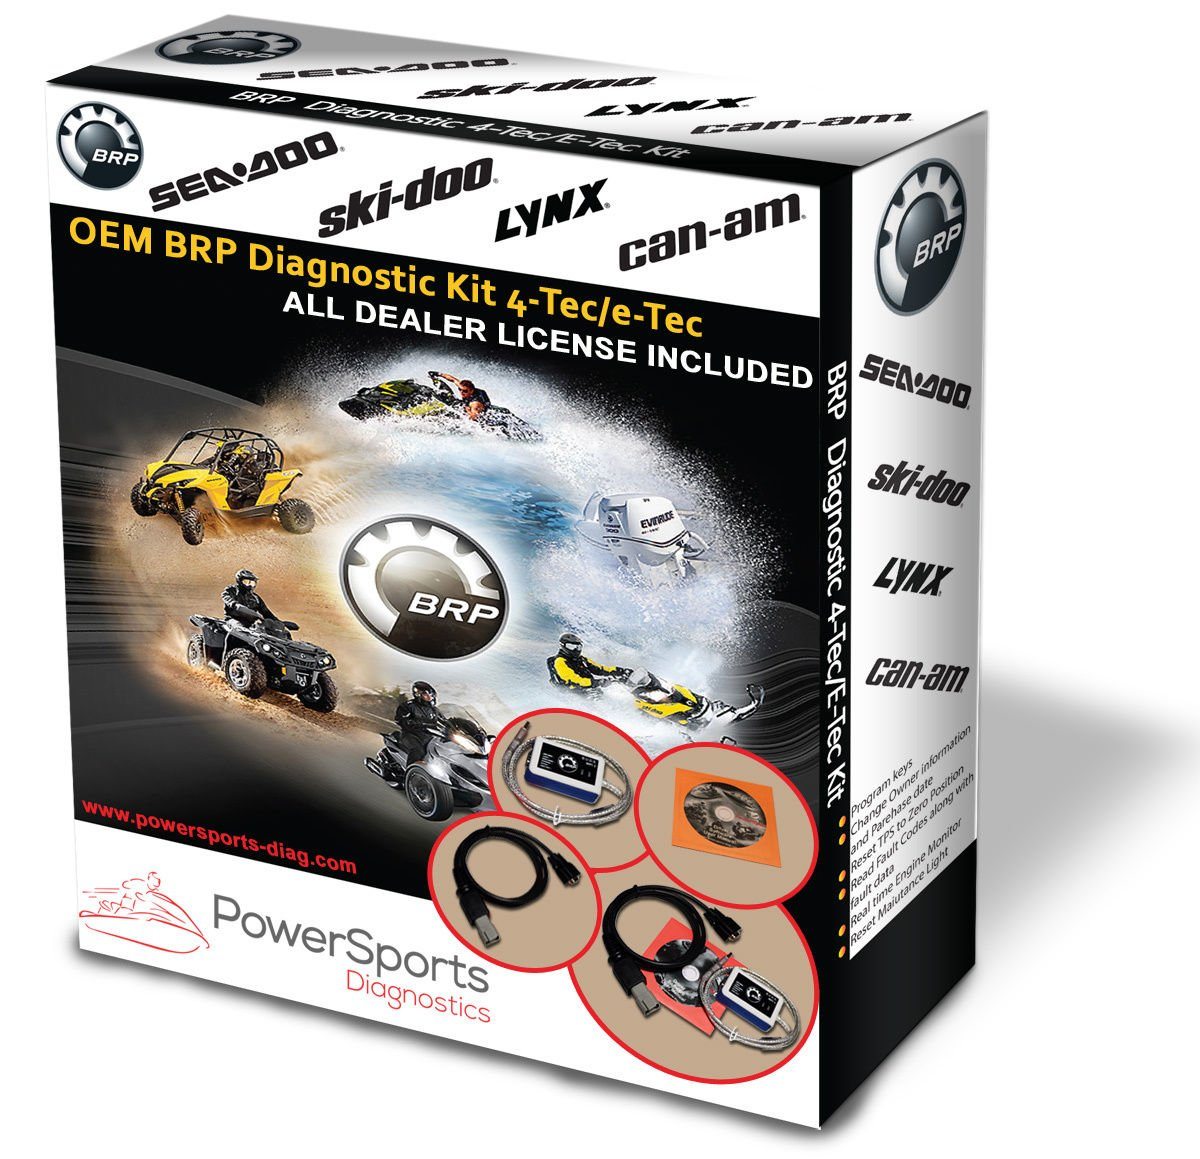 BRP BUDS / BUDS2 MPI-3 Diagnostic Kit 4TEC/ETEC for SEADOO SKIDOO CANAM LYNX